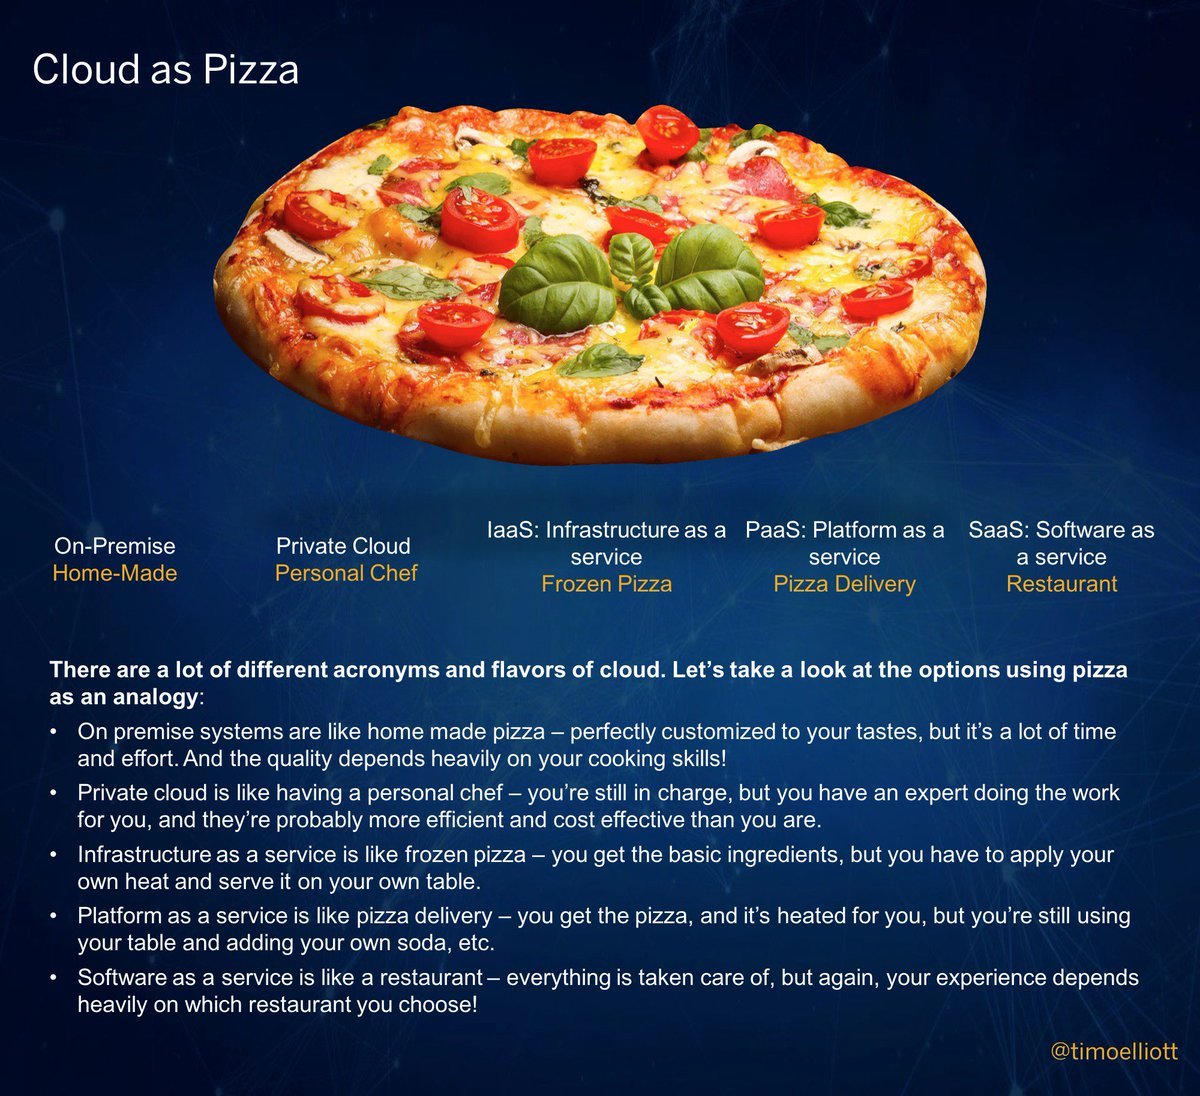 Confused by the acronyms? Here's #Cloud as Pizza! Enjoy... https://t.co/IzOKi6SjRB